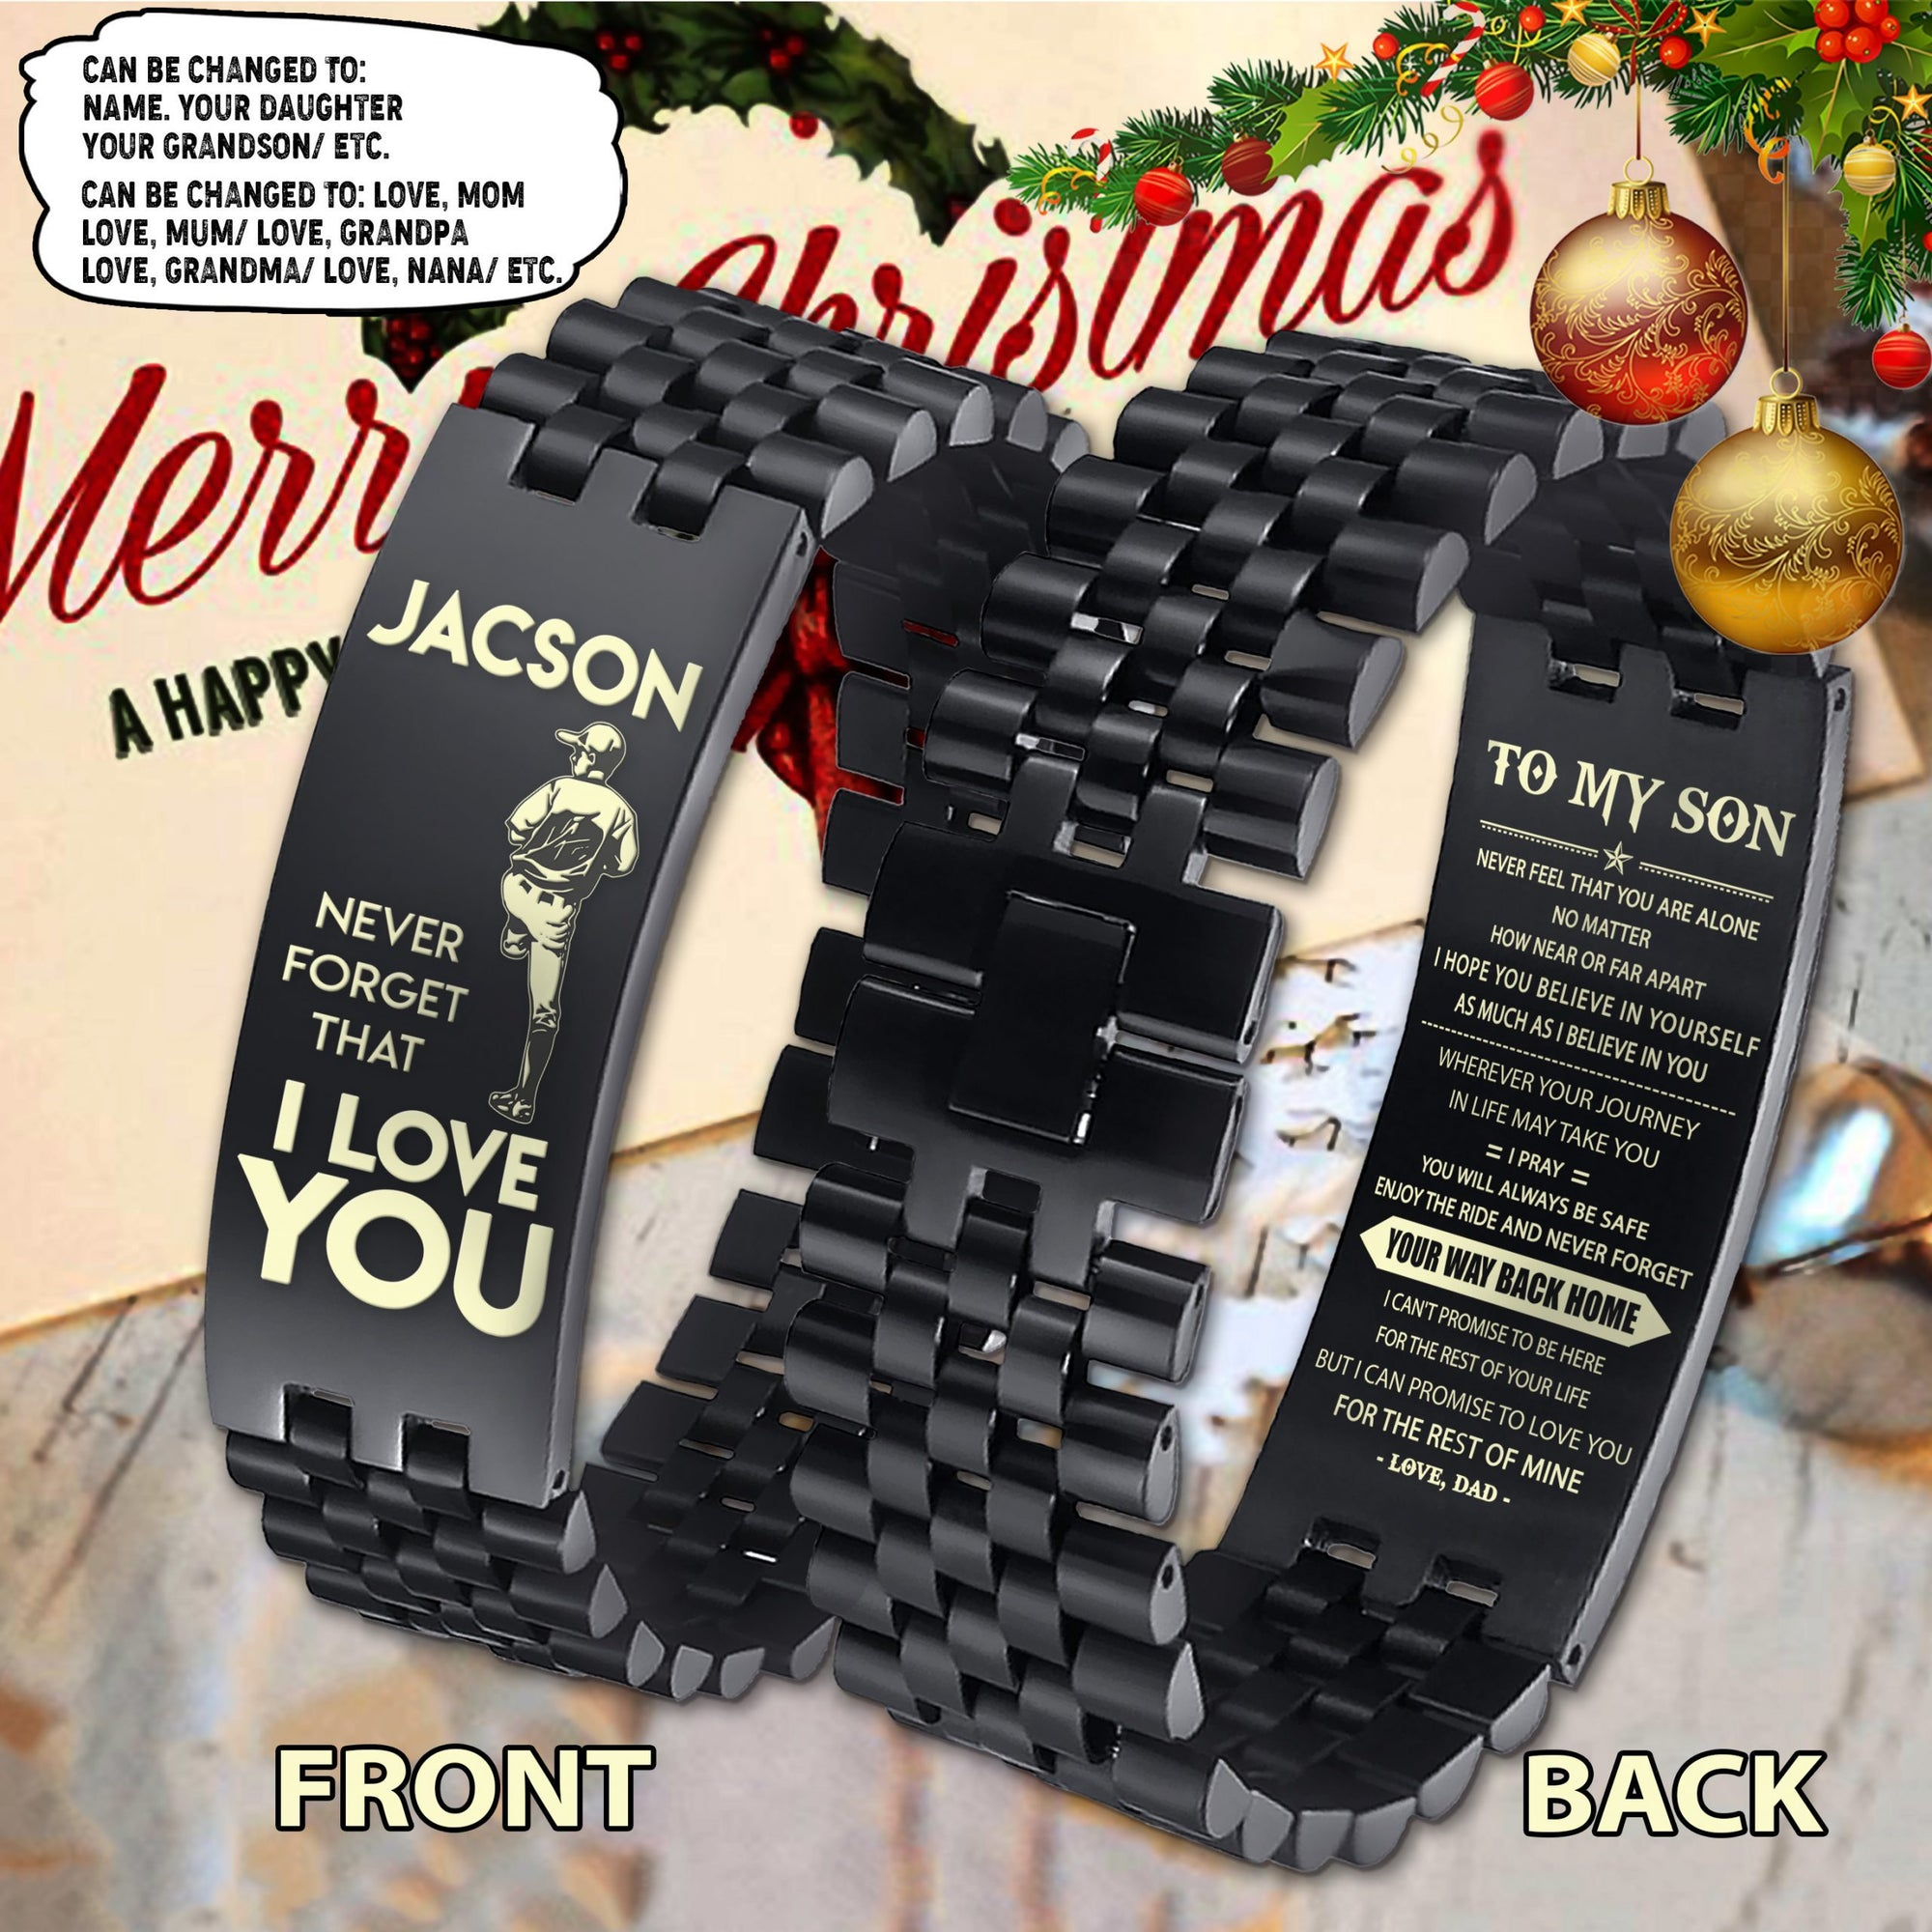 (LP285) CUSTOMIZABLE BASEBALL BRACELET 2 FACES- DAD TO SON- YOUR WAY BACK HOME- FREE SHIPPING FROM 2 ITEMS